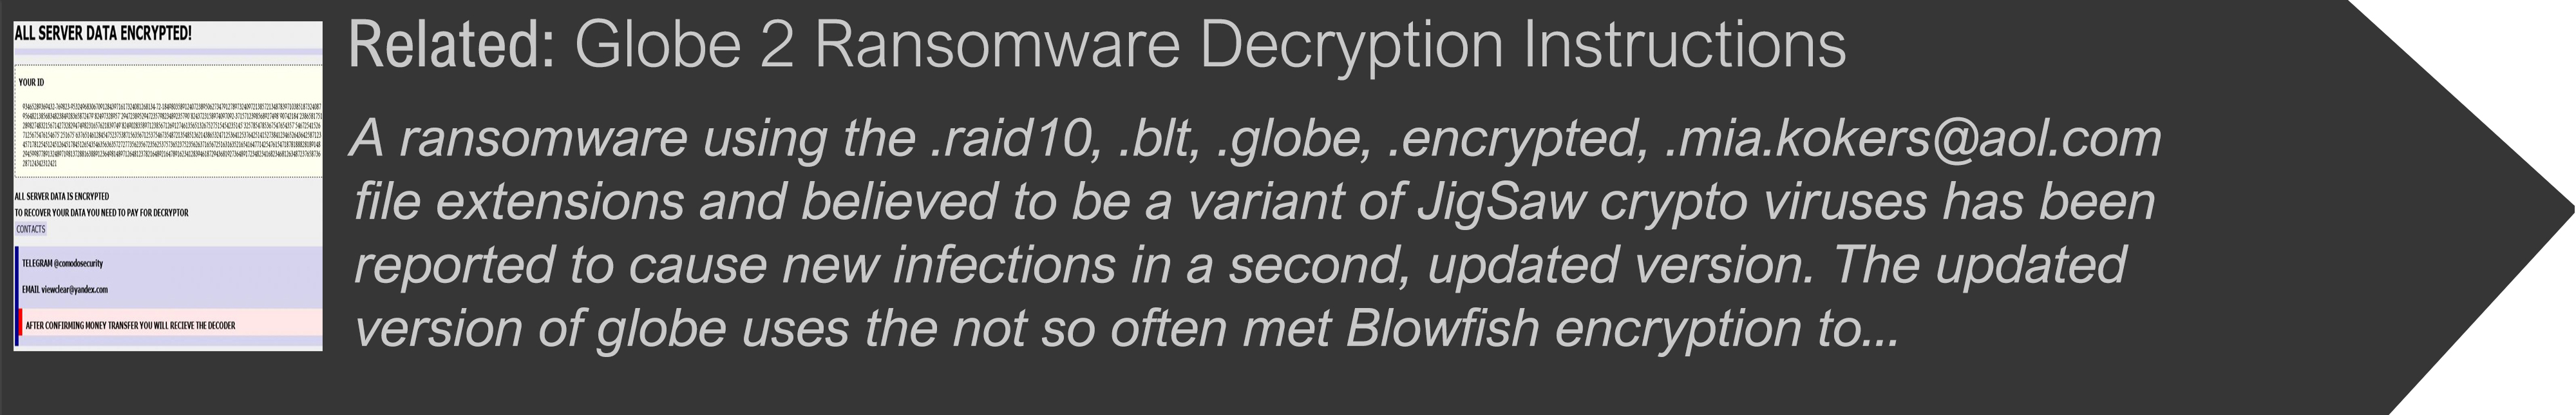 globe-2-0-ranomware-decryption-instructions-sensorstechforum